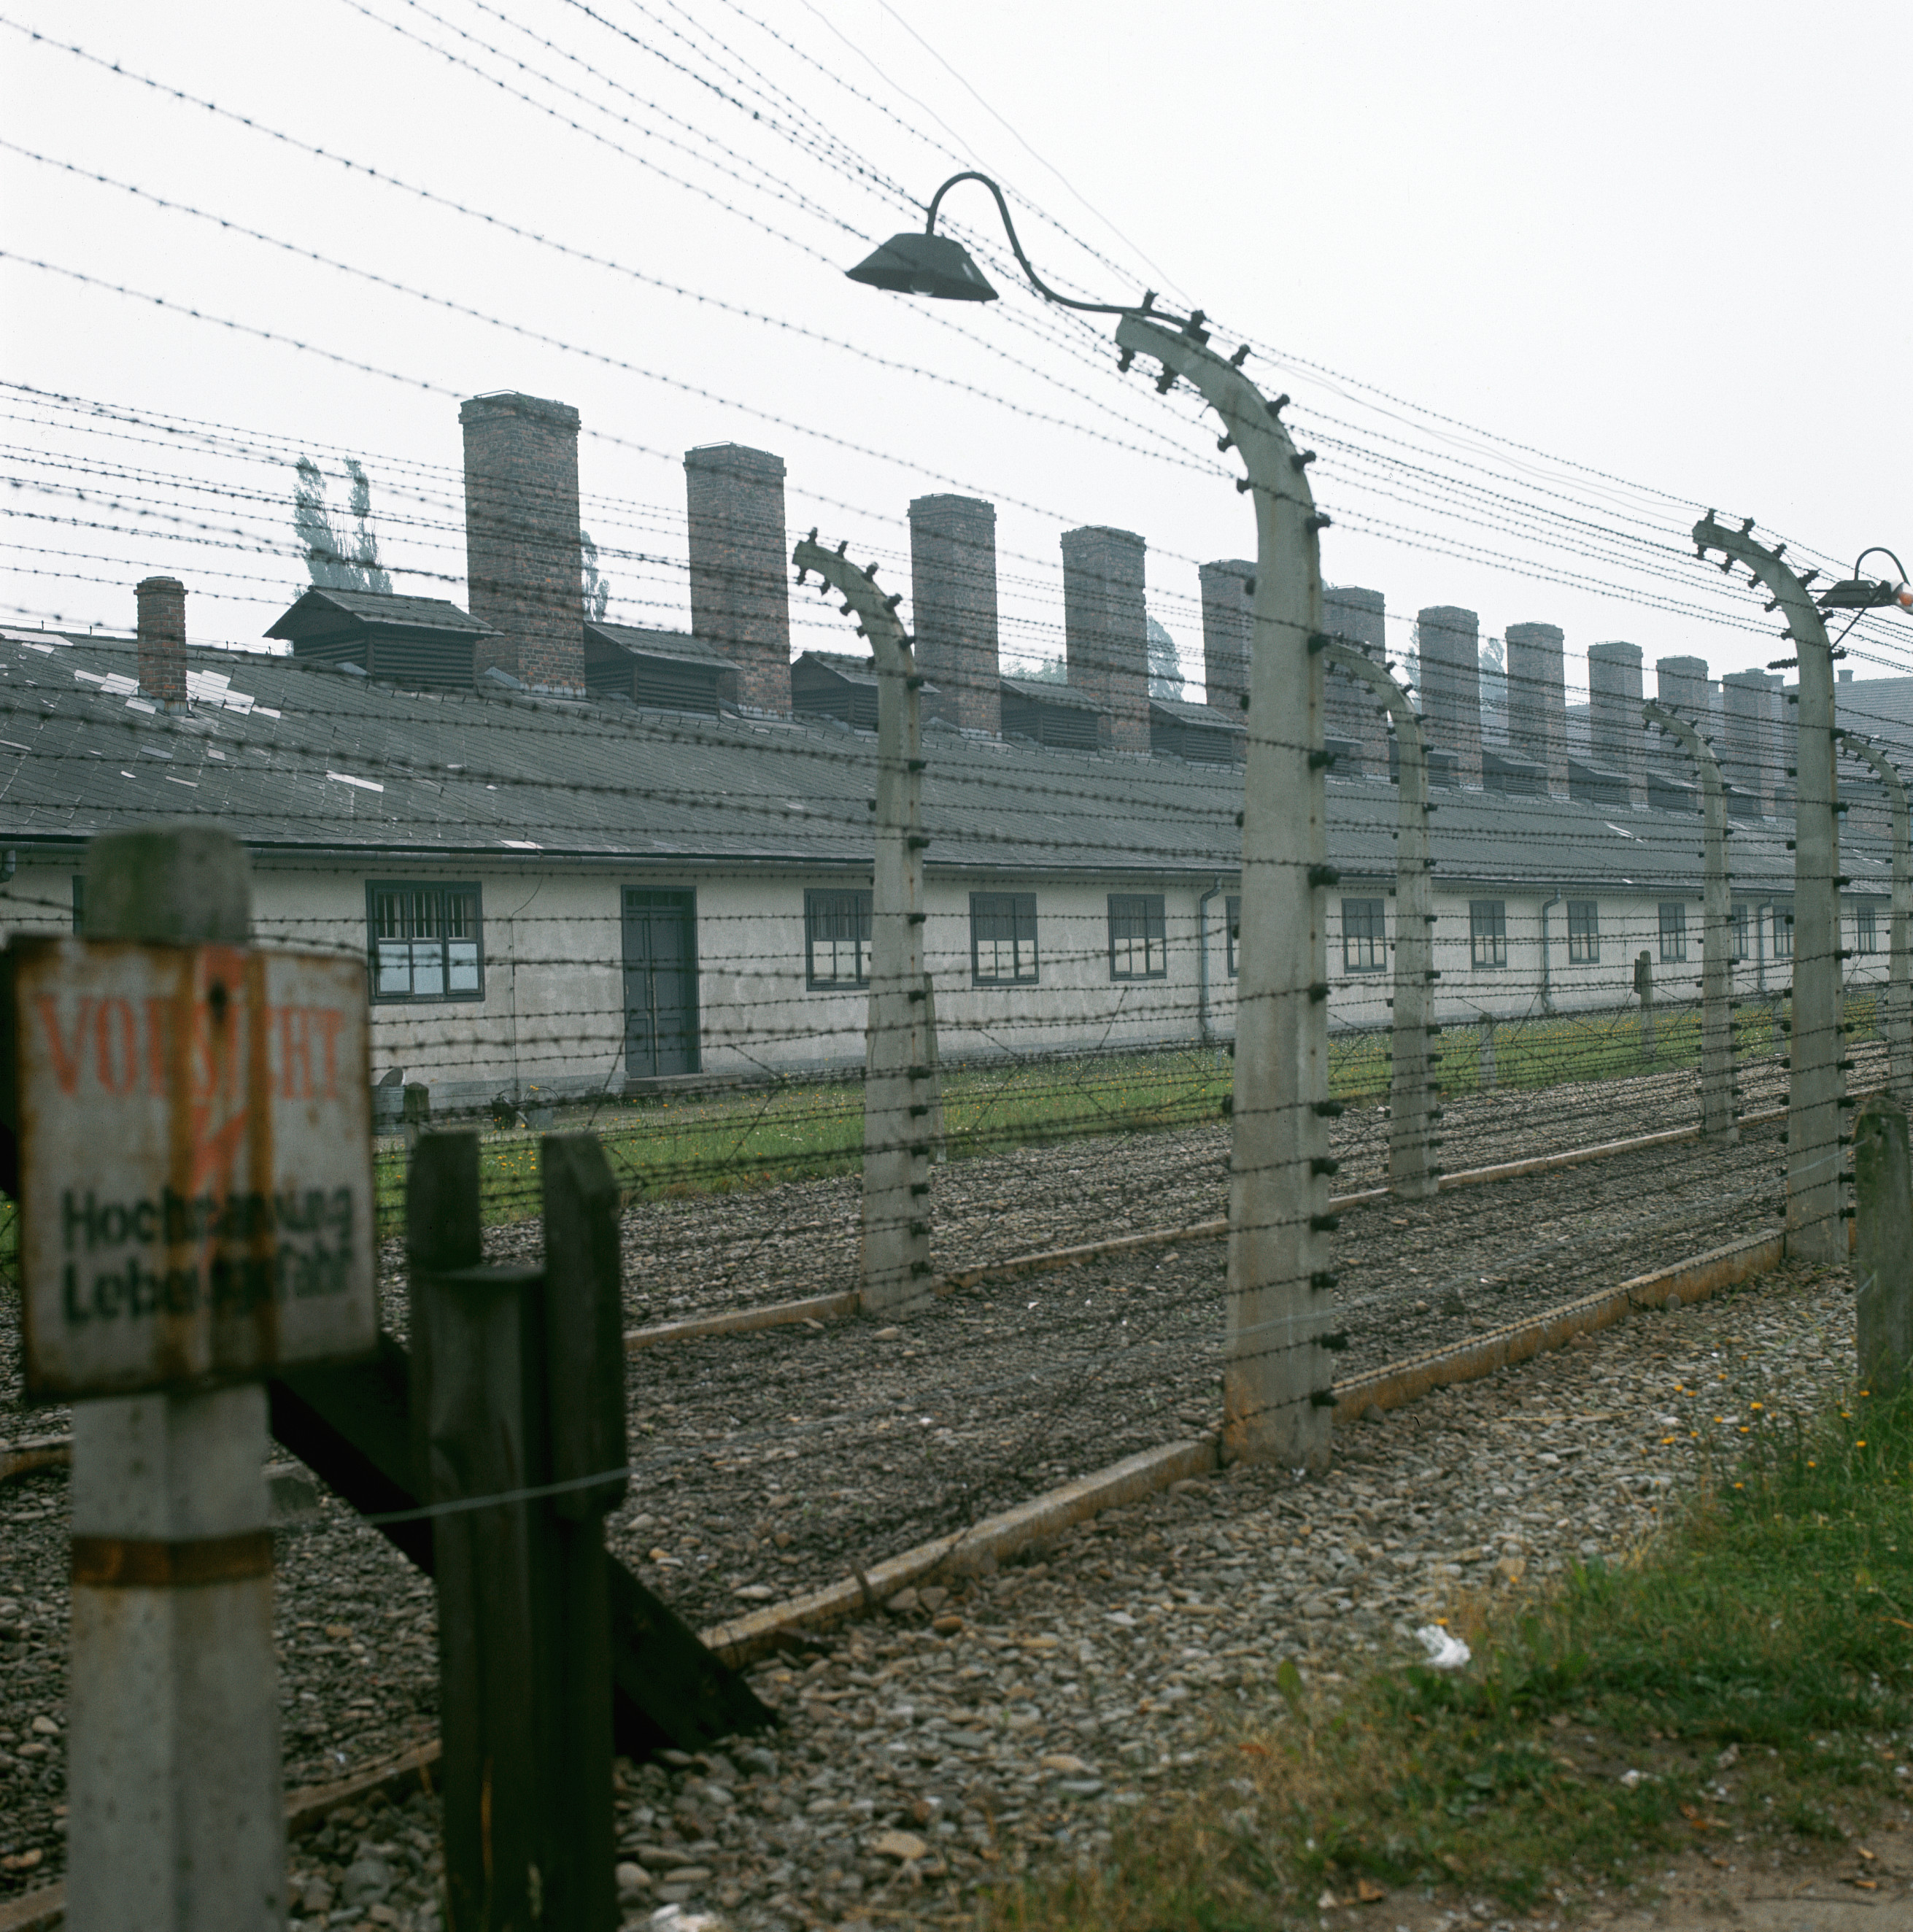 Where Was The Auschwitz Camp Located: Holocaust Concentration Camps